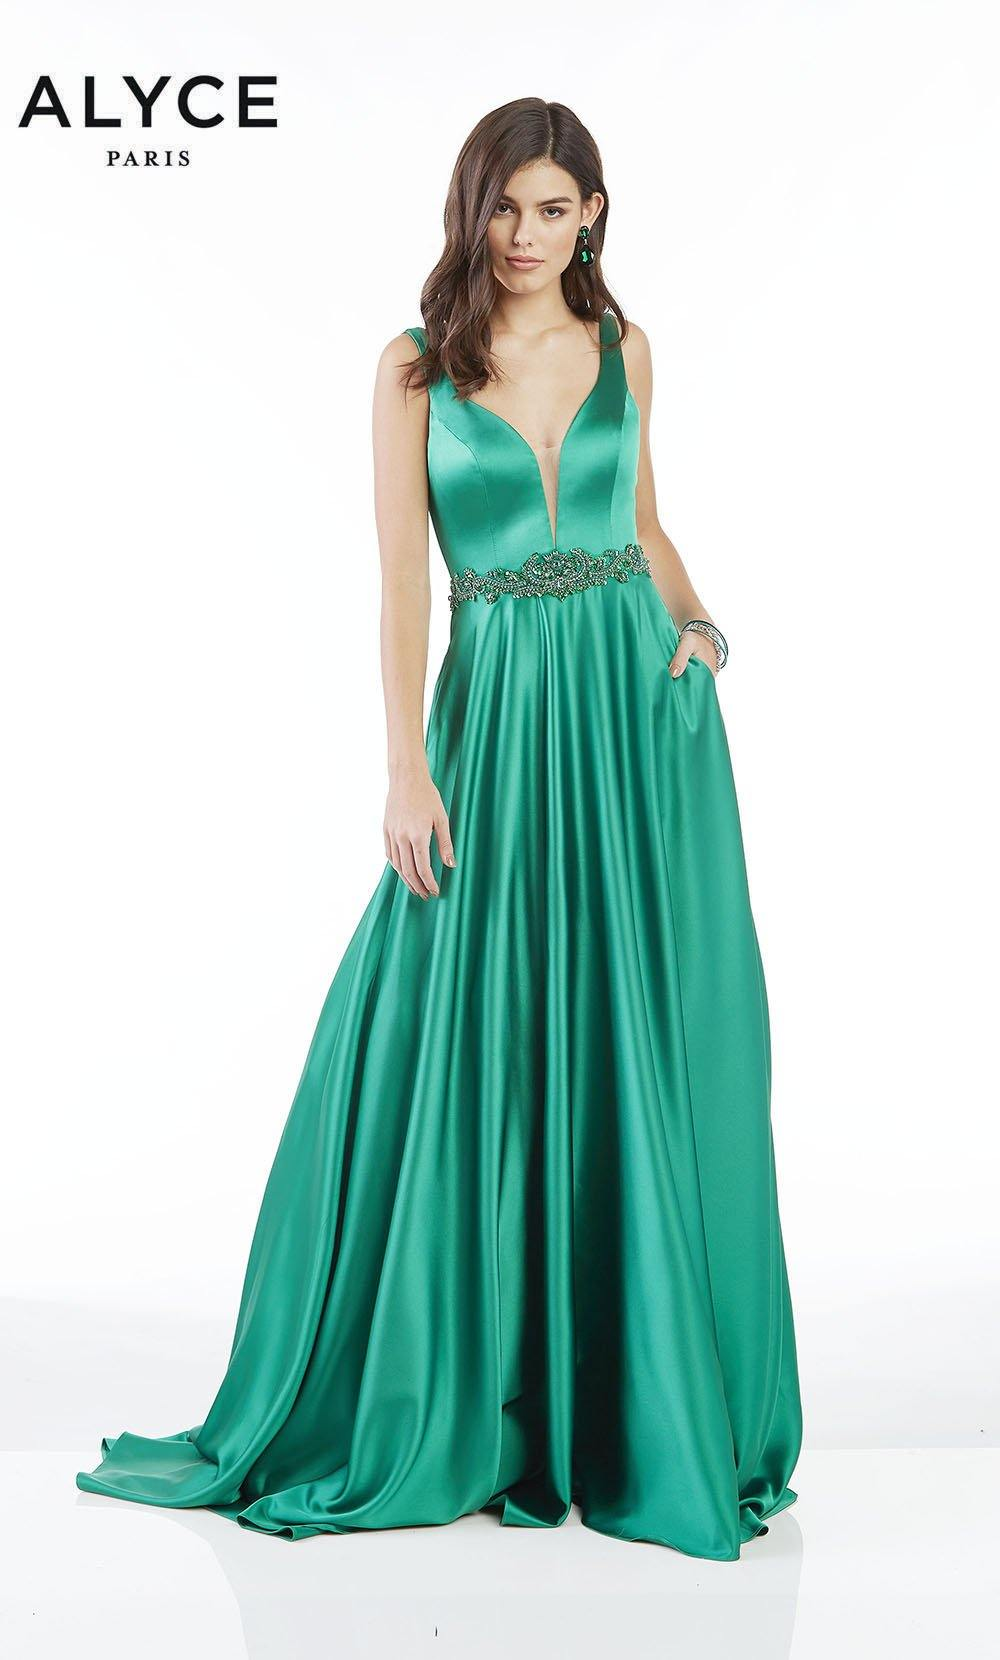 Emerald Green luminous satin A line formal dress with a plunging neckline and beaded natural waistline